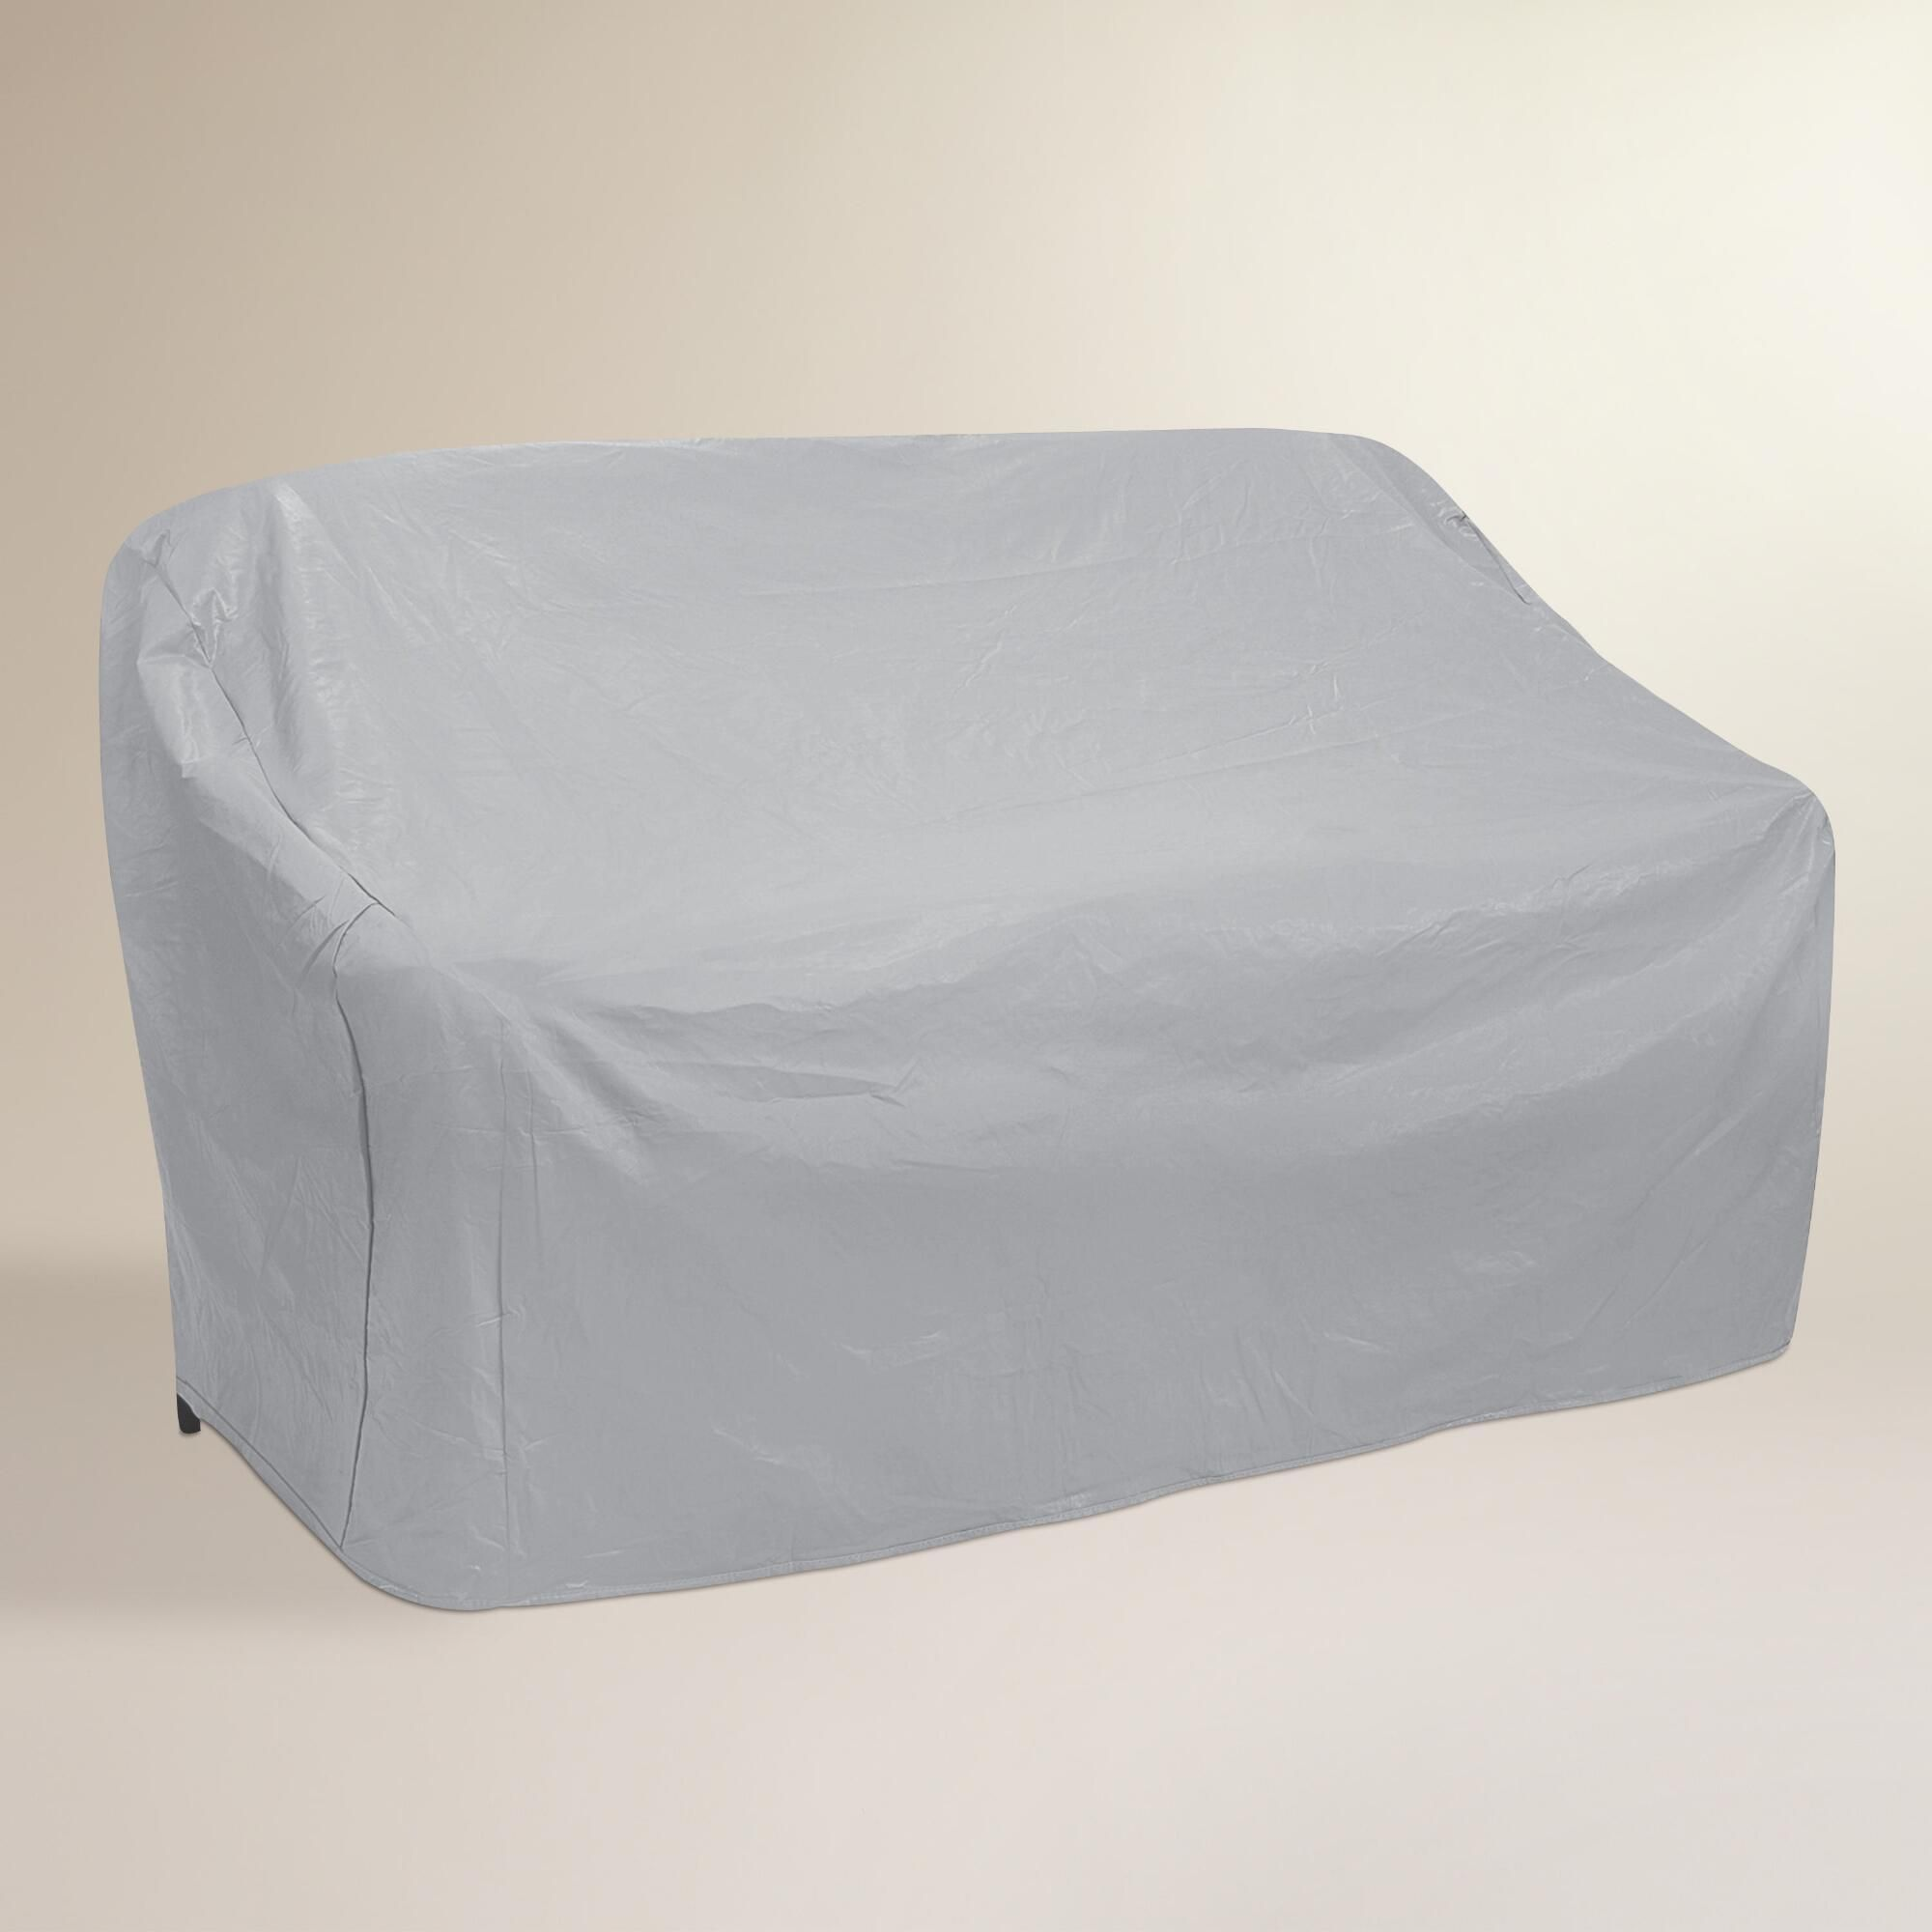 6b75ae1704bf29dab1873af31e2f6470 Top Result 50 Unique Waterproof Patio Furniture Covers Pic 2017 Iqt4